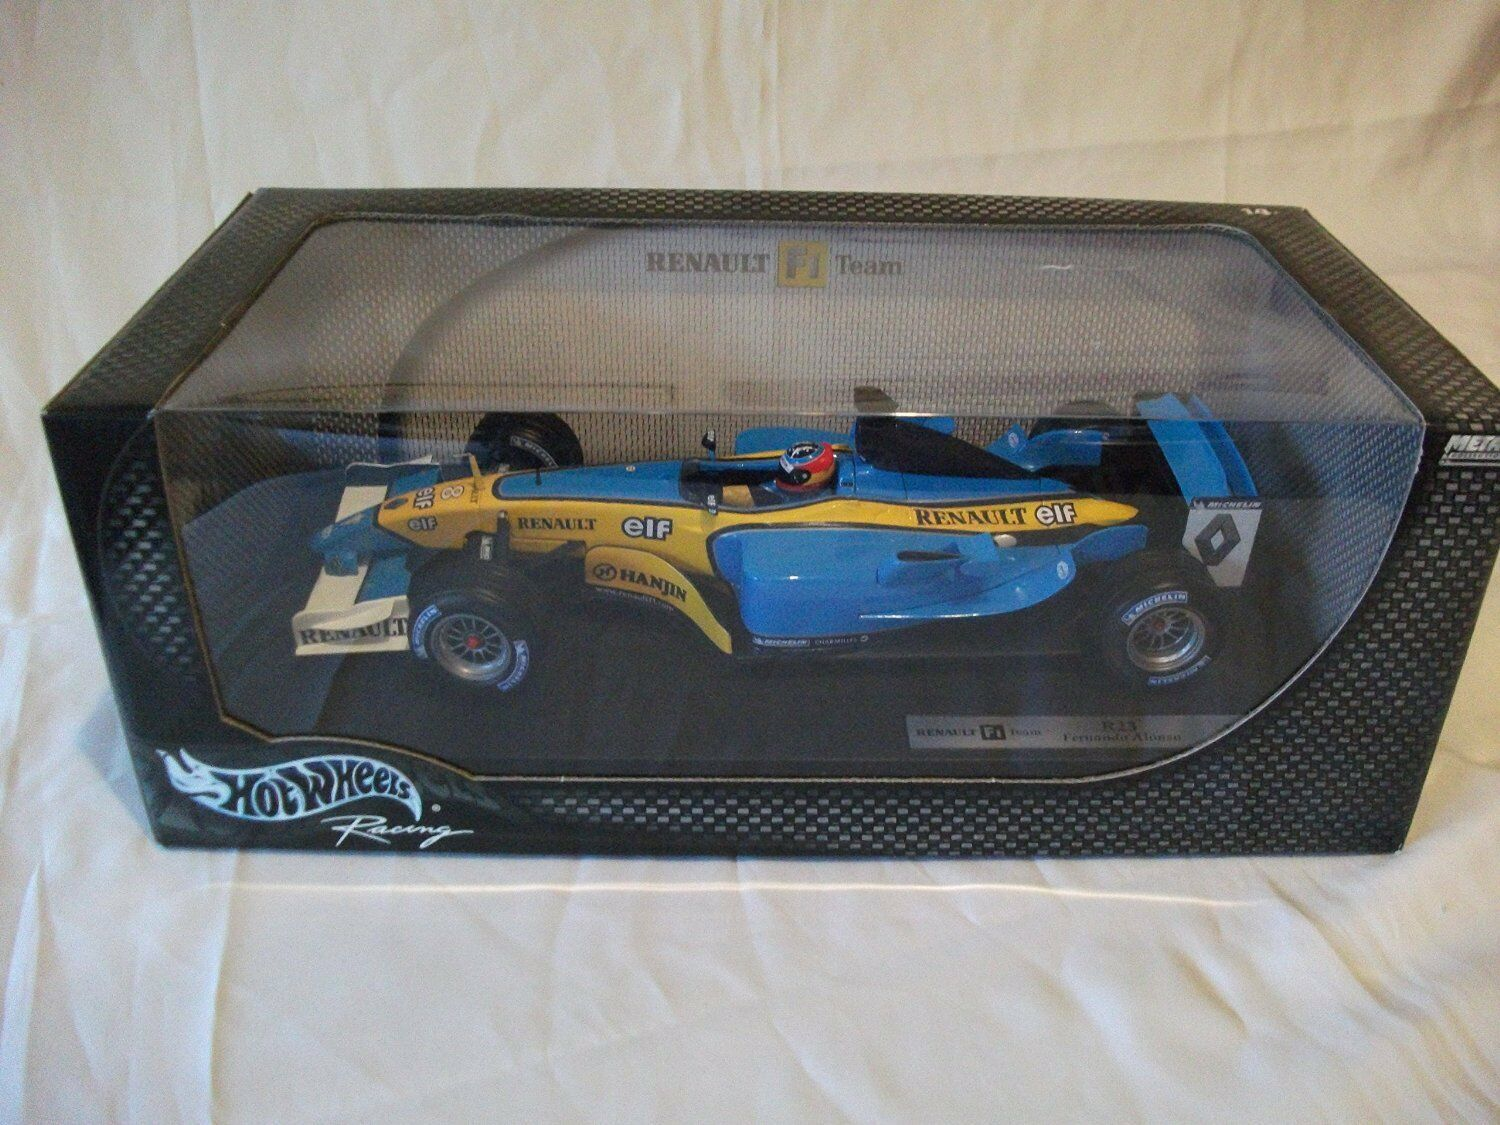 Renault R23 F. Alonso scale 1:18 Hotwheels NEW !!